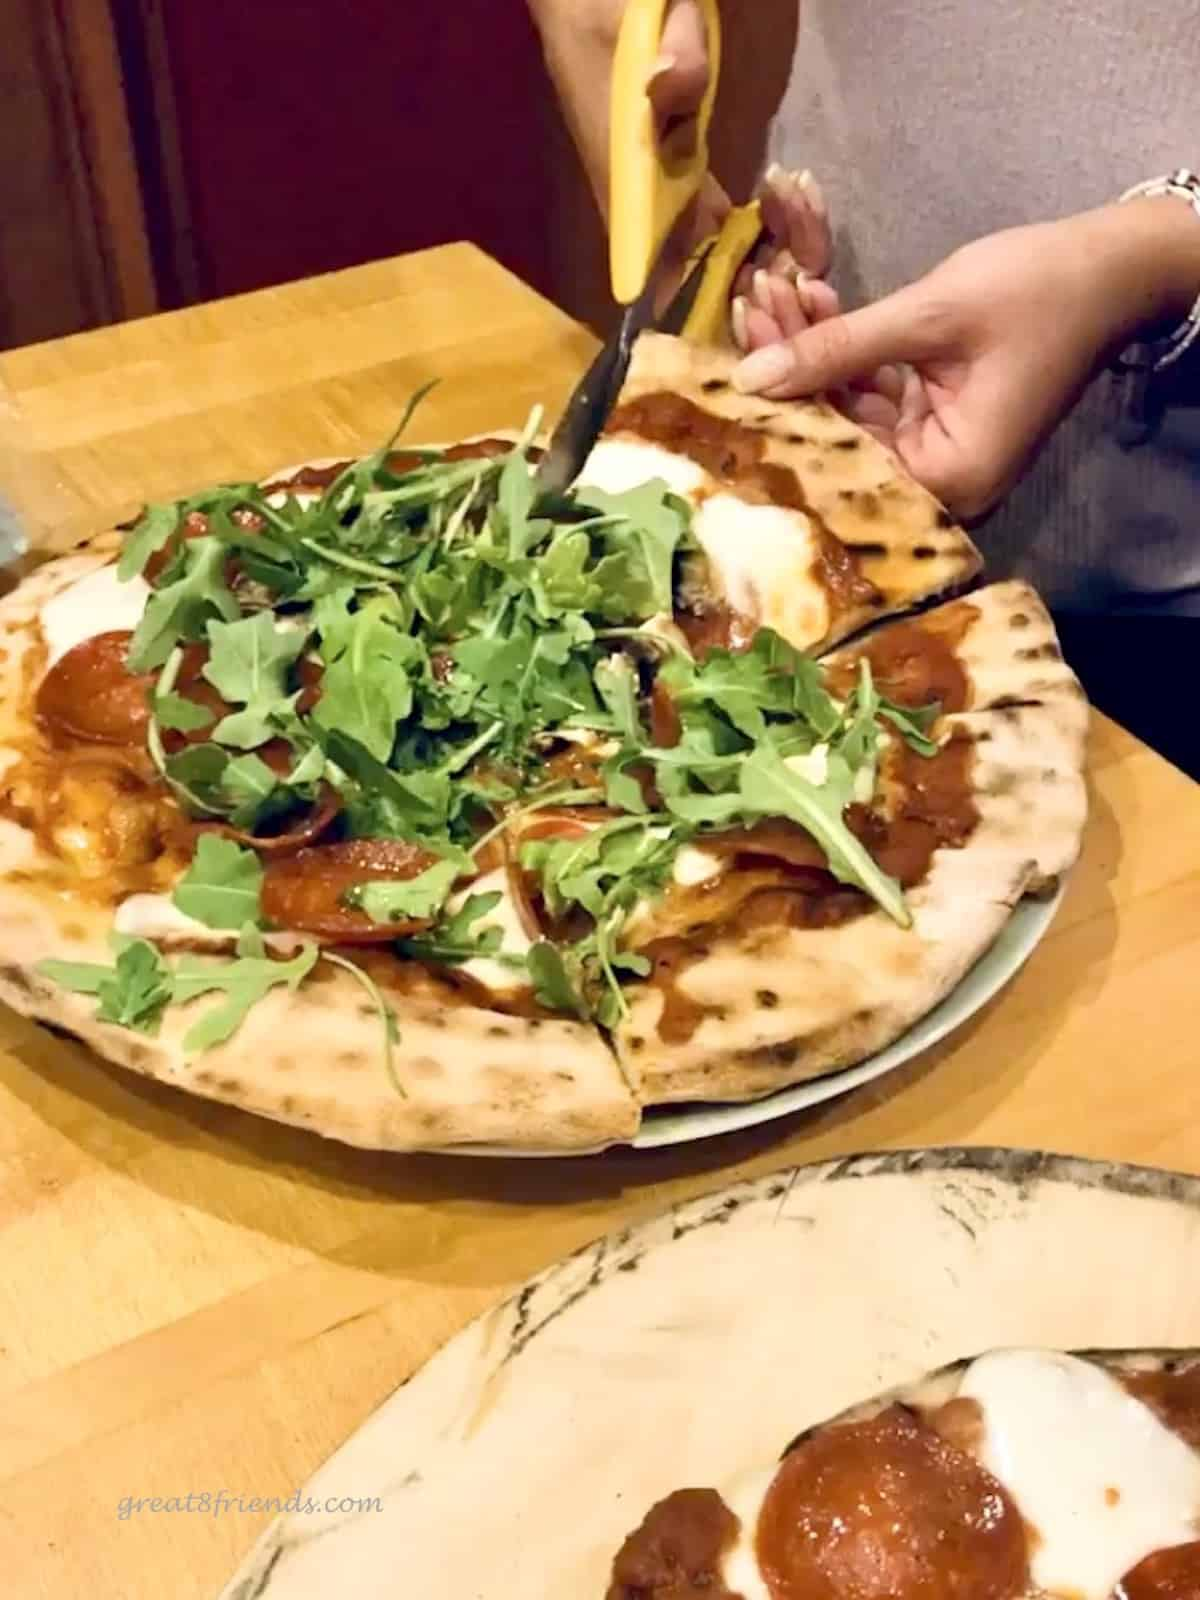 Pizza with arugula topping being cut with scissors.